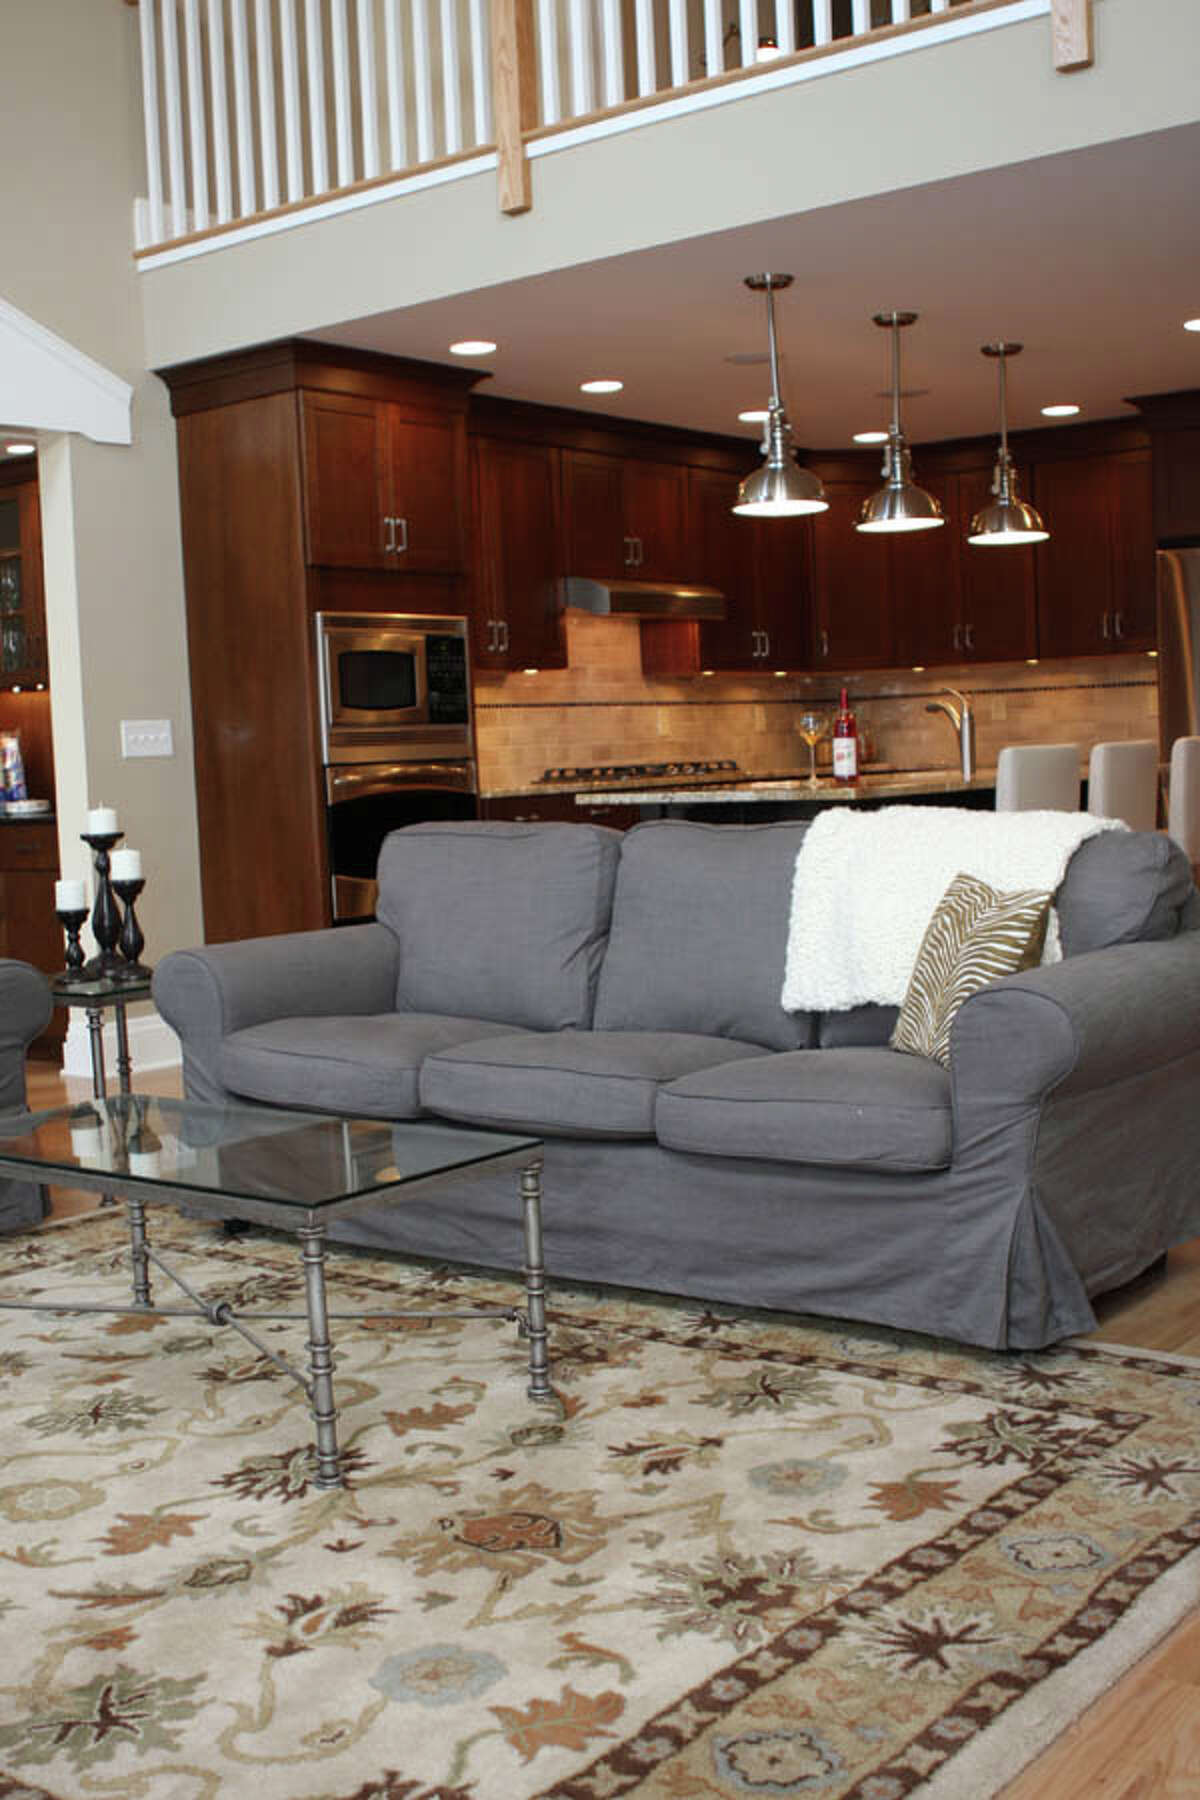 The 12th annual Parade of Homes, hosted by the Capital Region Builders & Remodelers Association (CRBRA), will be held during the first two weekends of June this year. Its organizers hope to build community awareness of local builders and also to educate the public about the latest construction trends. Read more about this here.